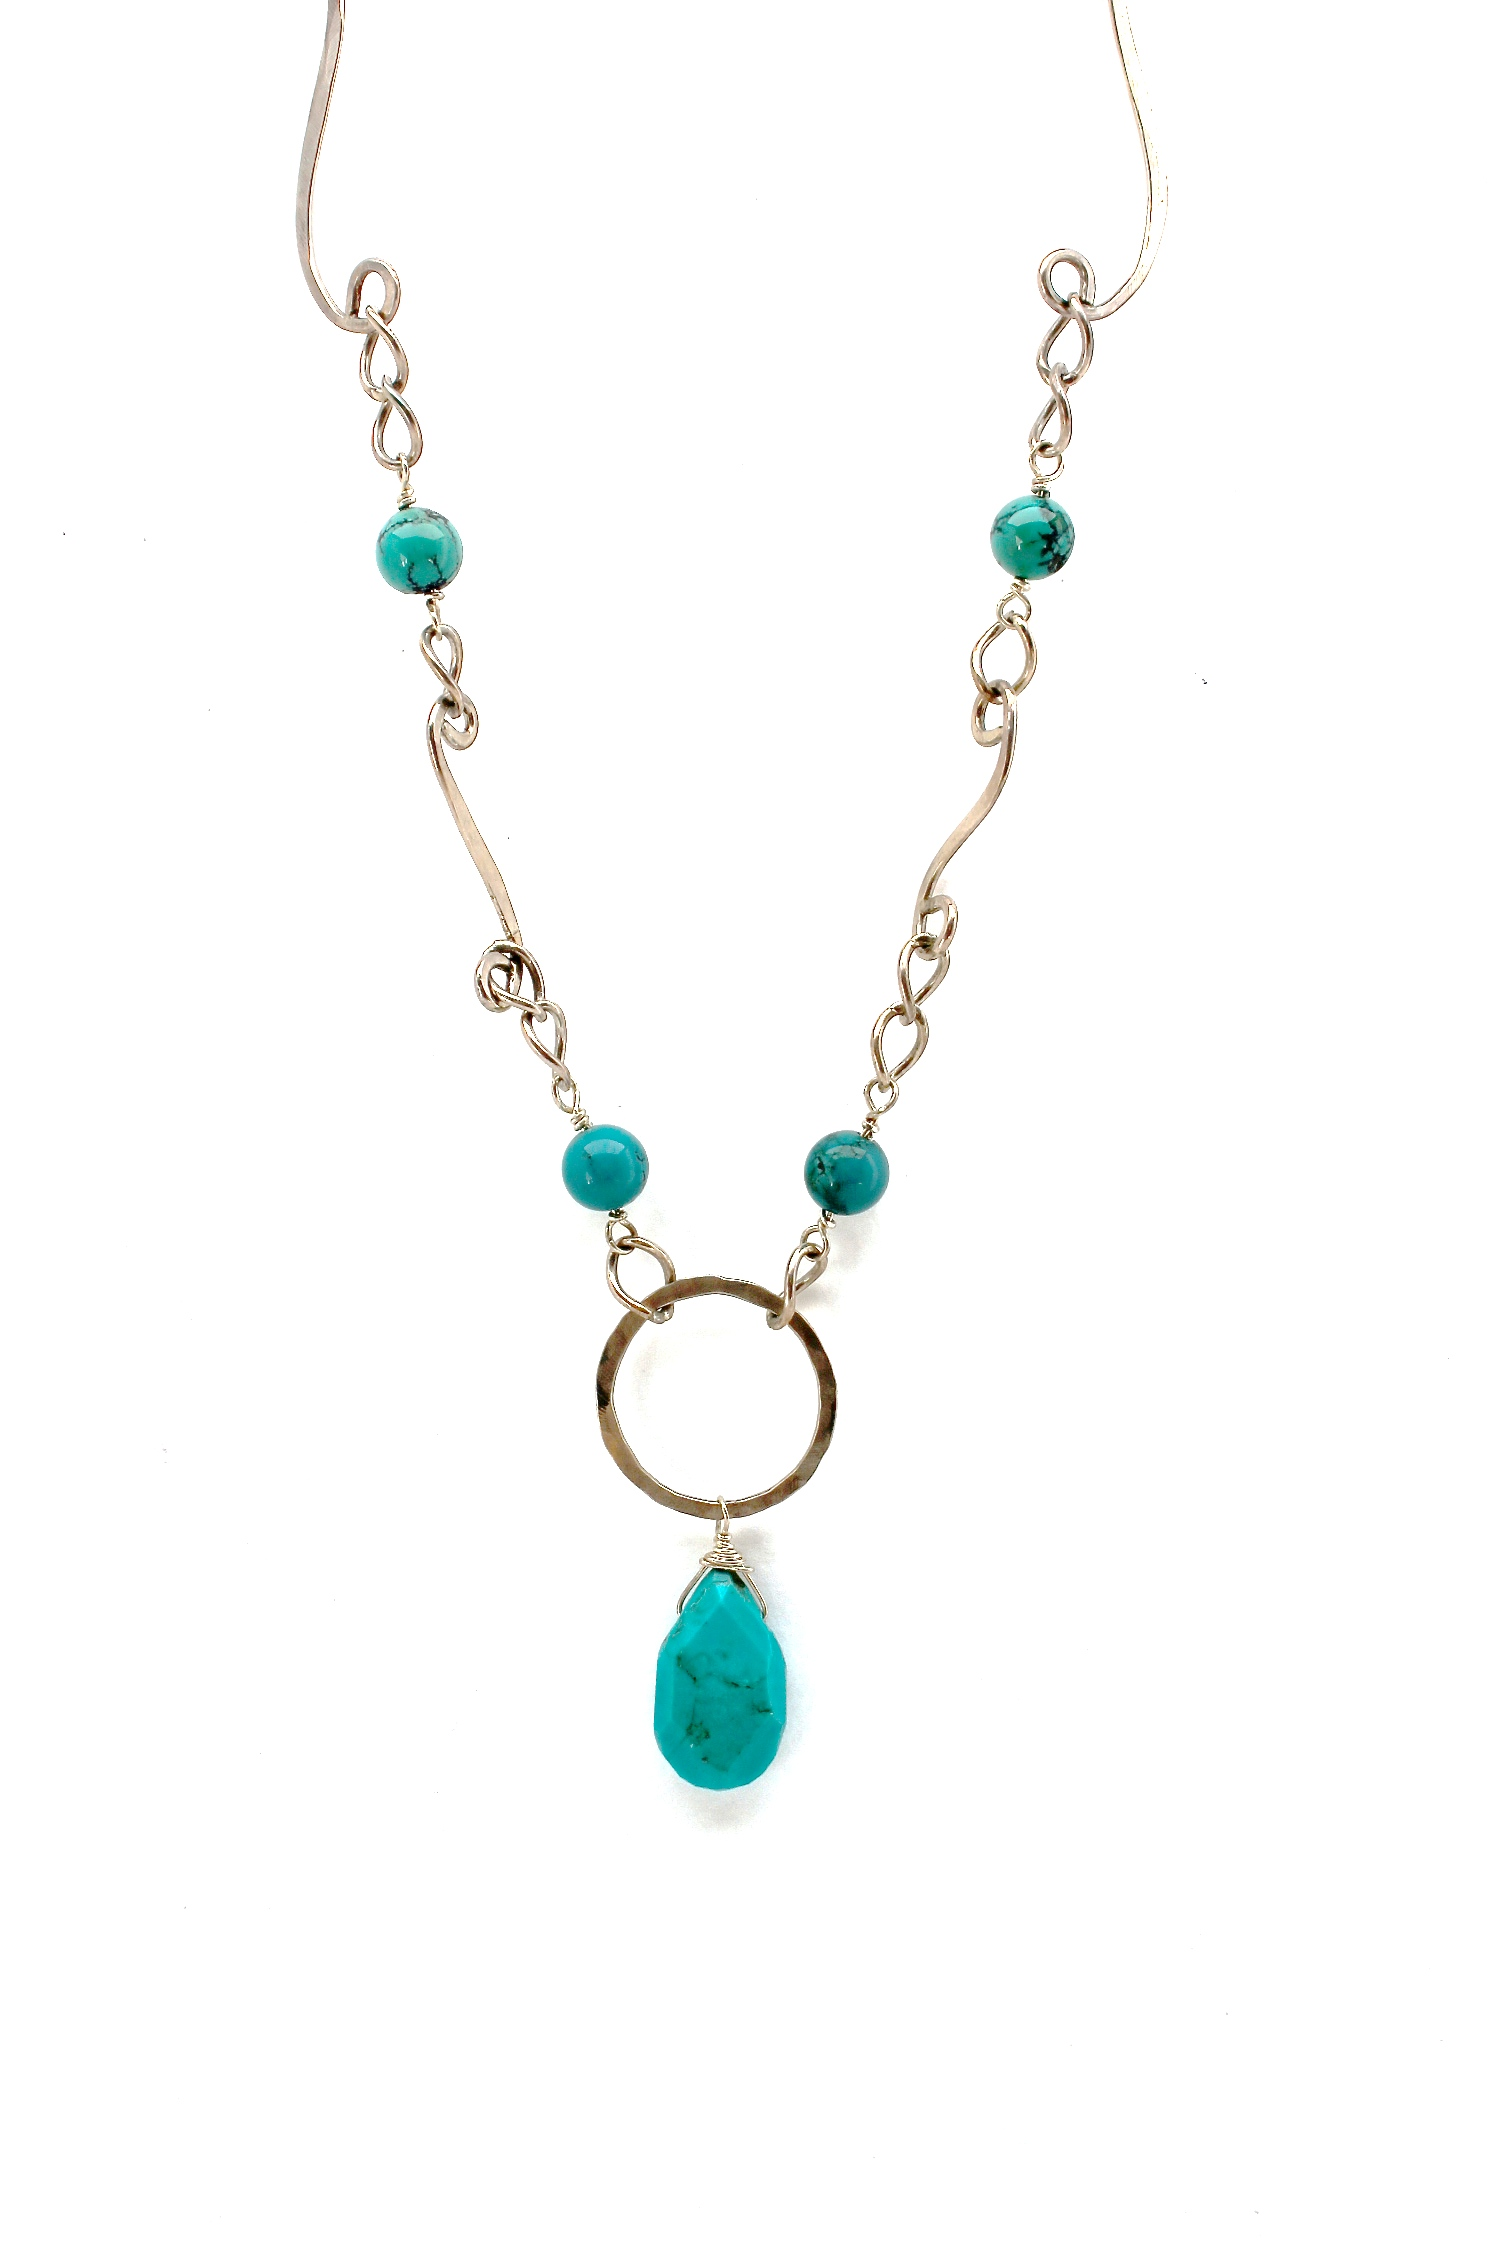 Turquoise + Sterling Silver Necklace